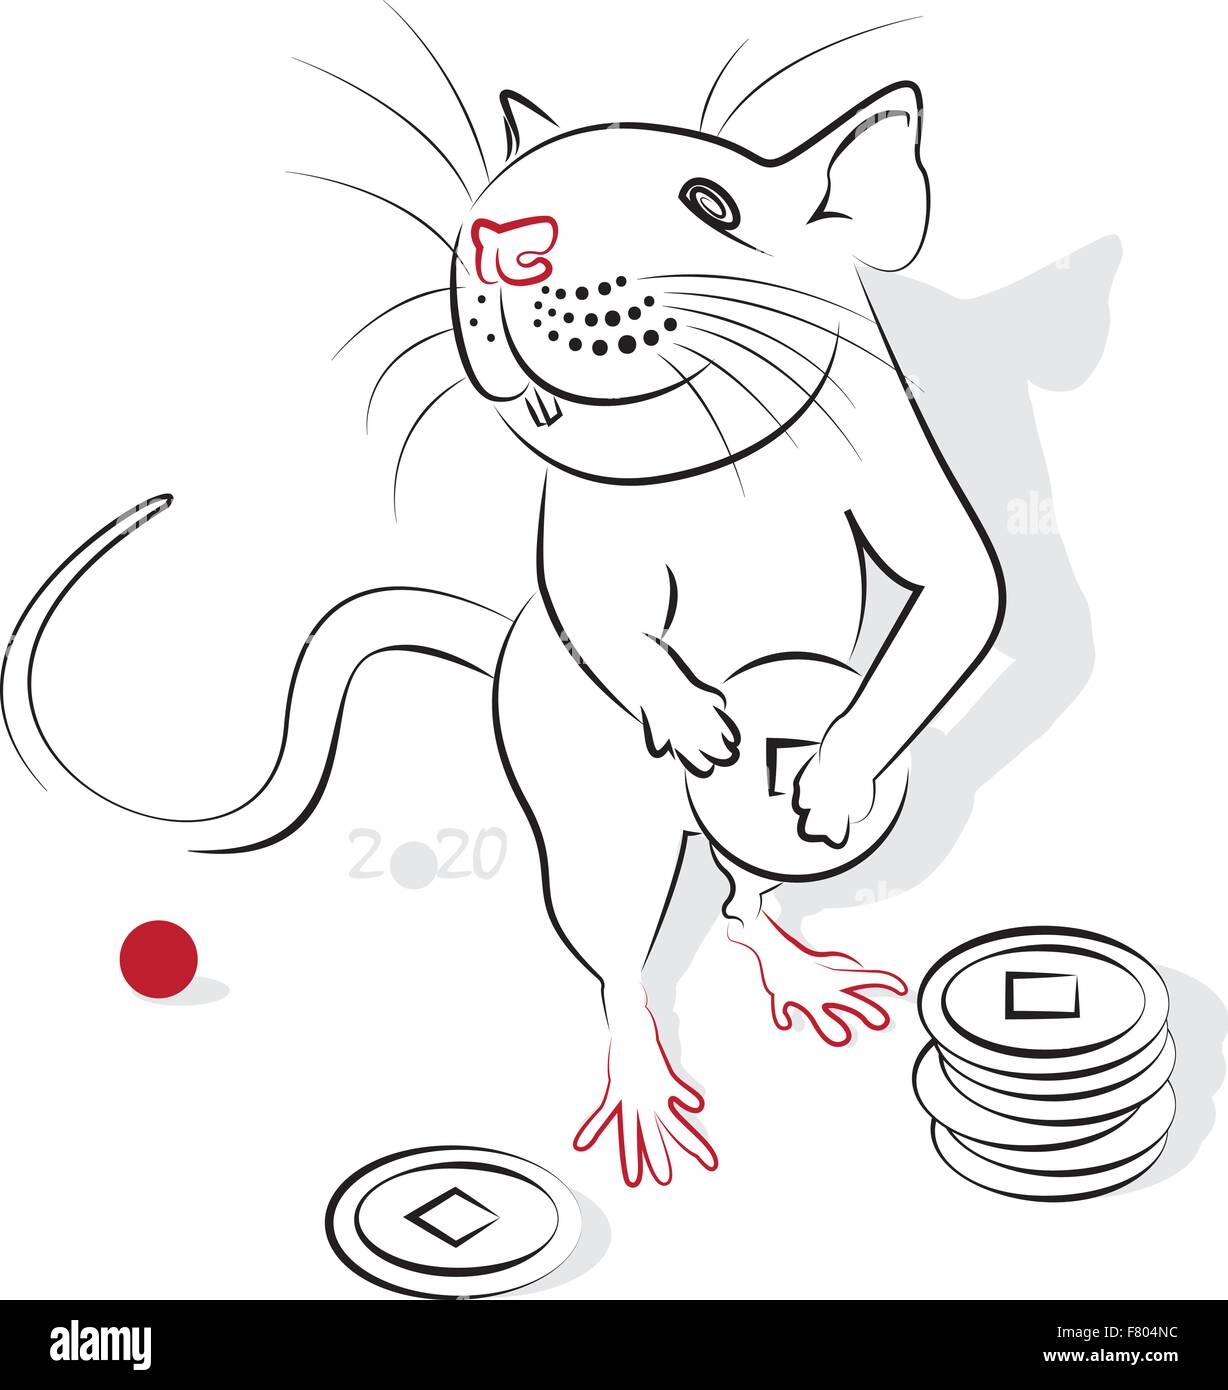 chinese new year 2020 of the rat rat year greeting or invitation card for the holiday vector illustration